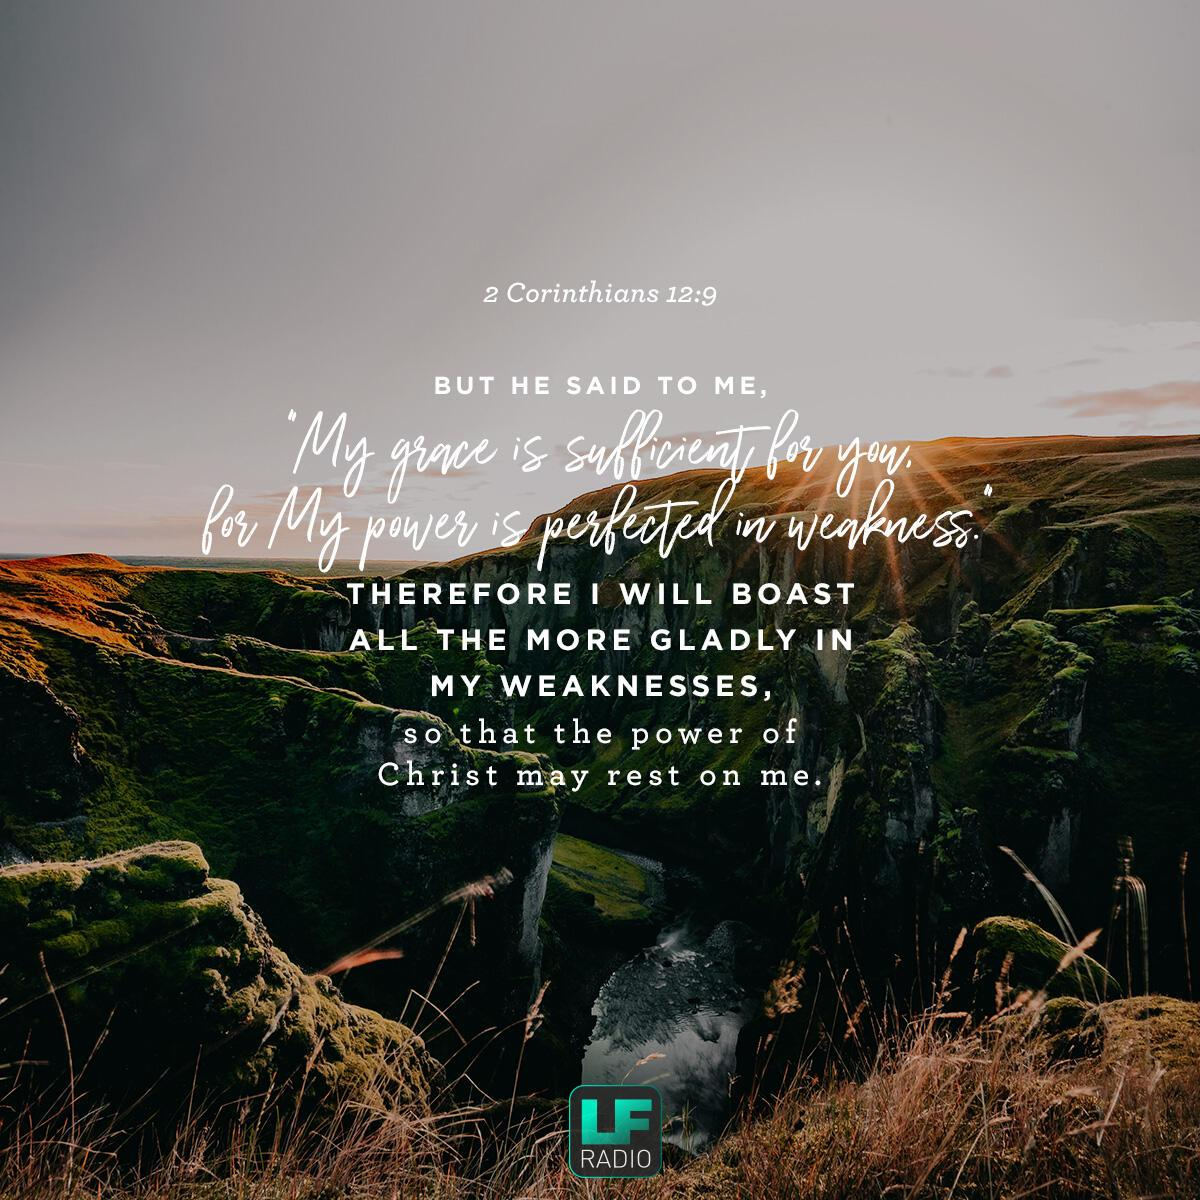 2 Corinthians 12:9 - Verse of the Day